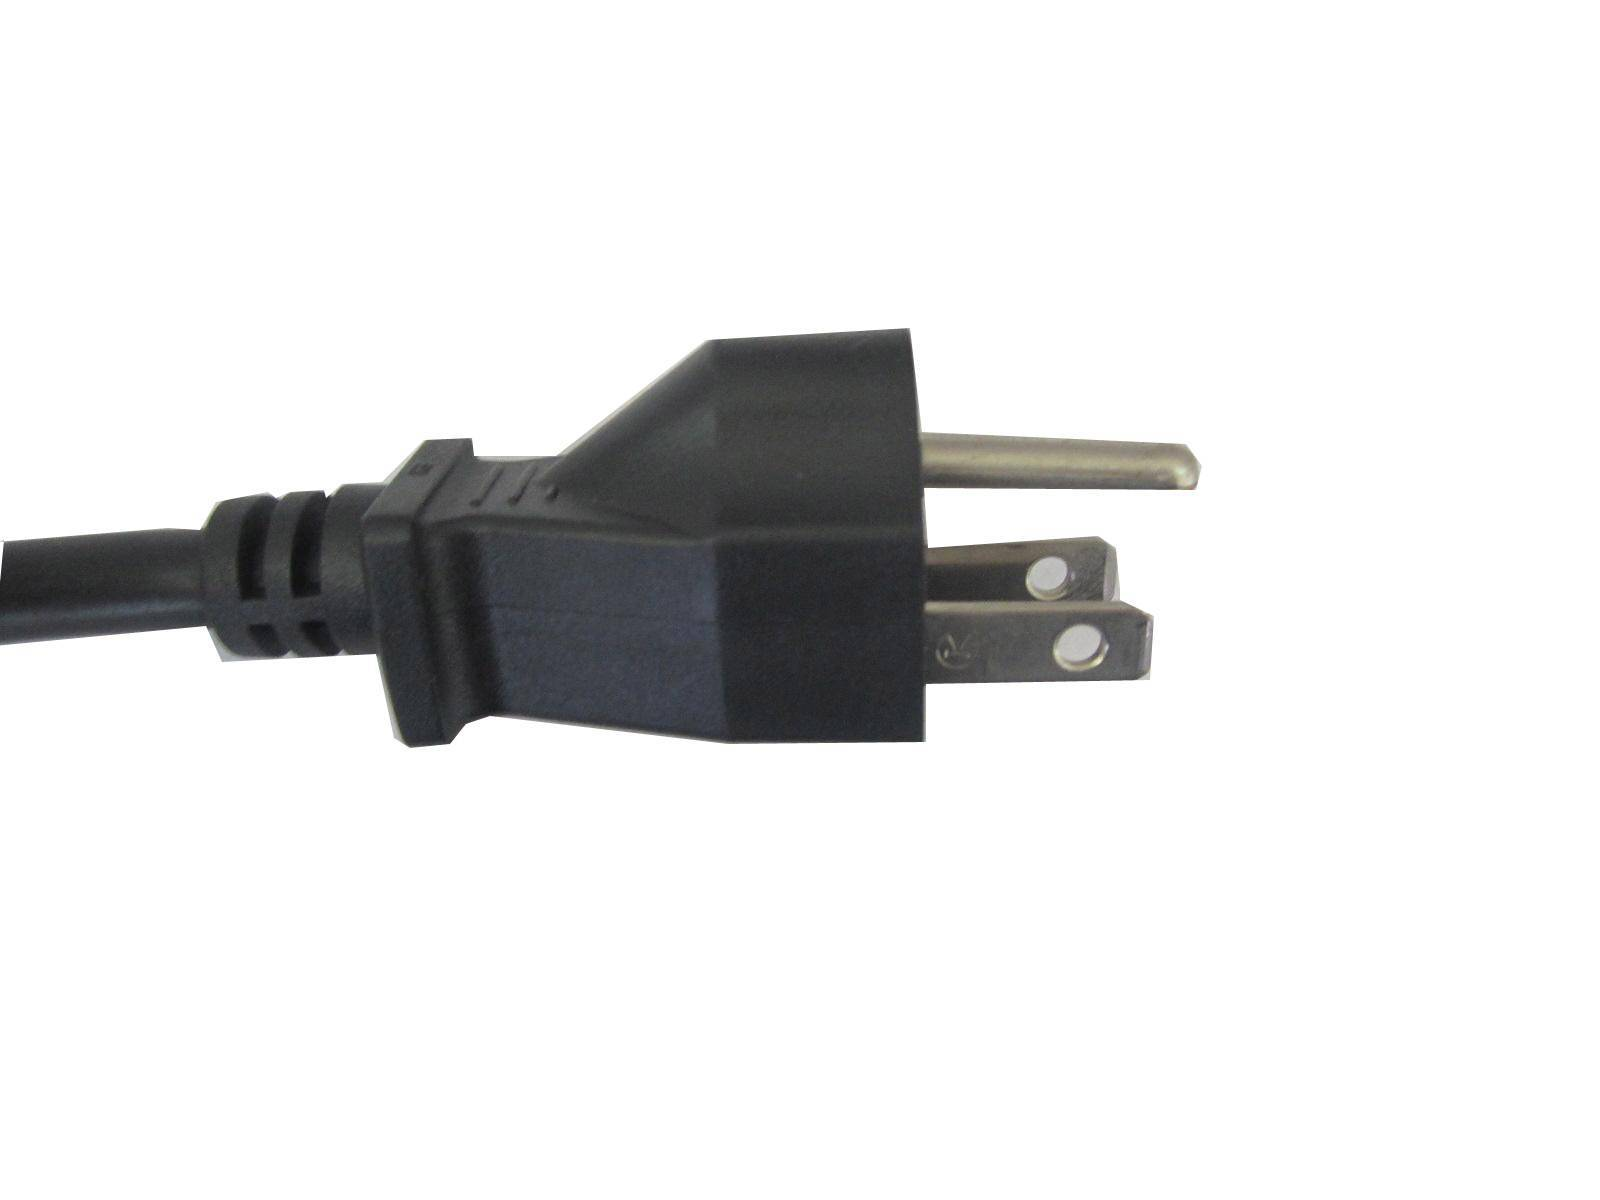 Sell NEMA 1-15P 15 A North America Plug (DJ-007)